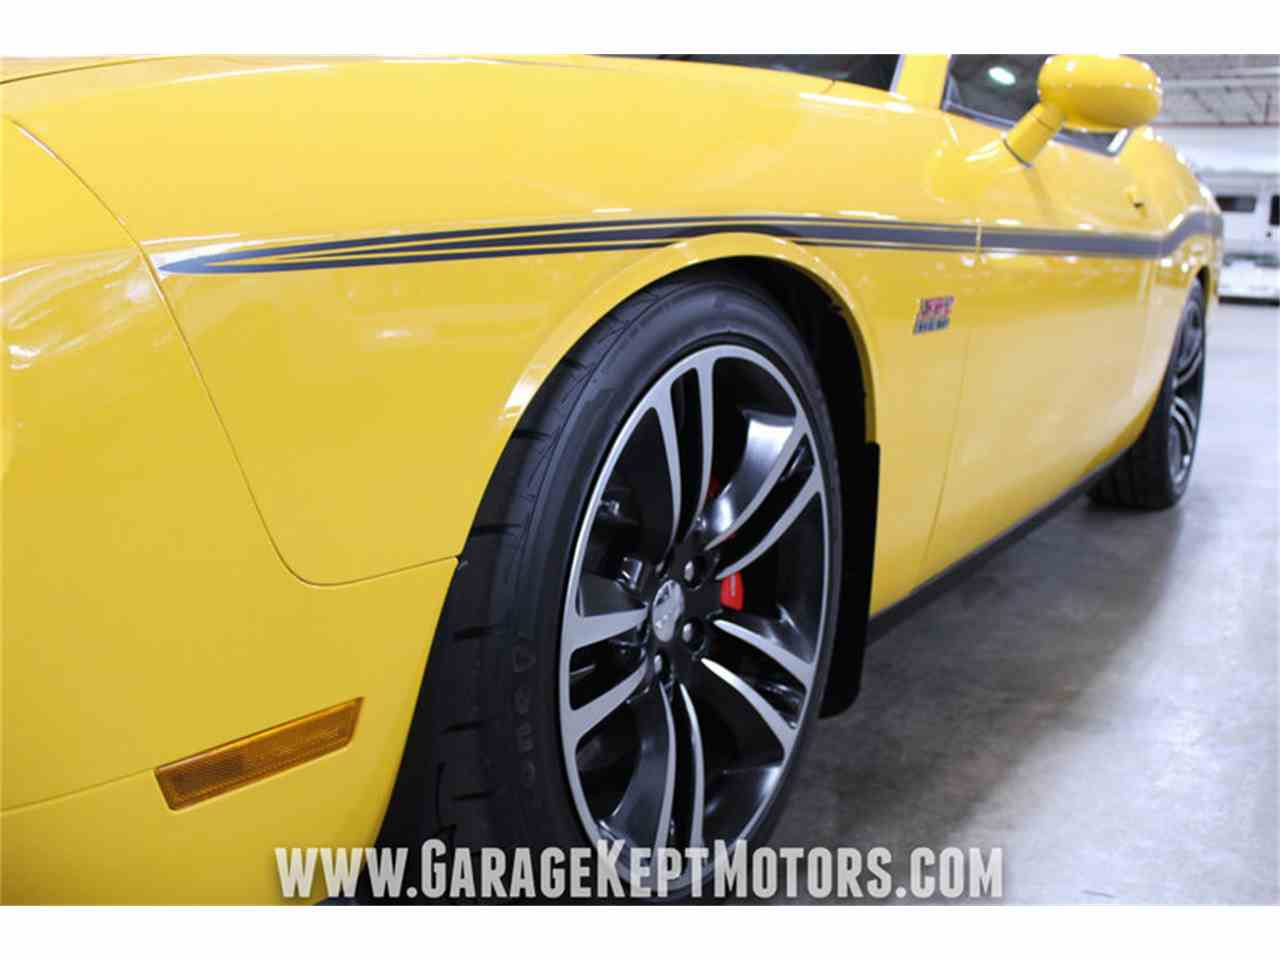 Large Picture of '12 Challenger SRT8 392 Yellow Jacket located in Grand Rapids Michigan - $36,500.00 - MAXR